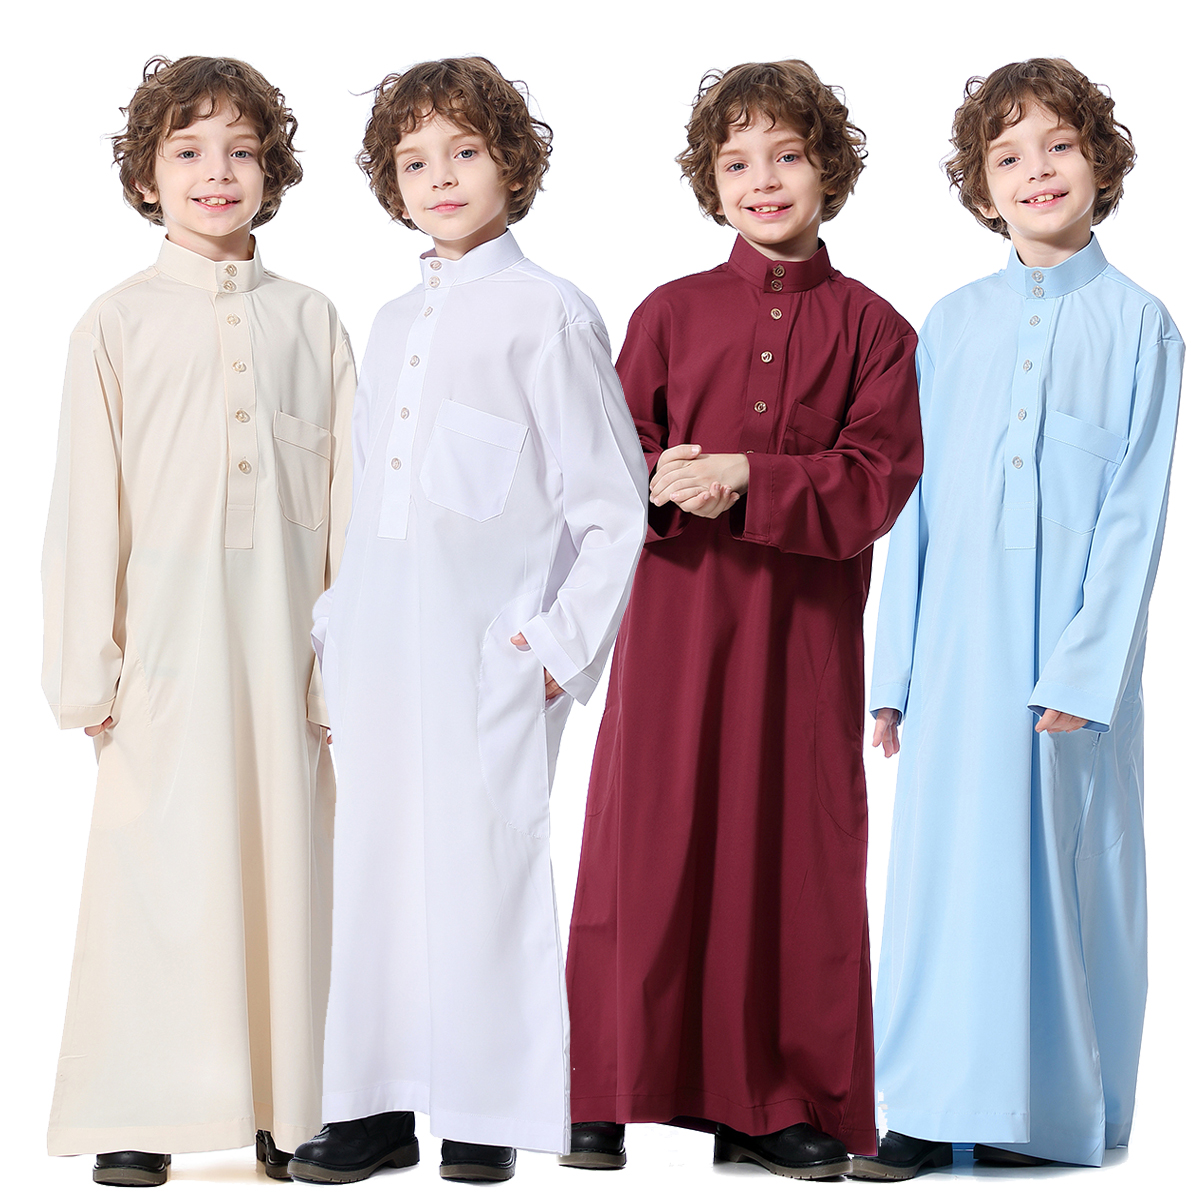 Arabic Jubba Thobe Thoub Muslim Arab Boys Robe Dishdasha Islamic Abaya Clothing Long Sleeve Middle East Teenage Boy Robe Clothes